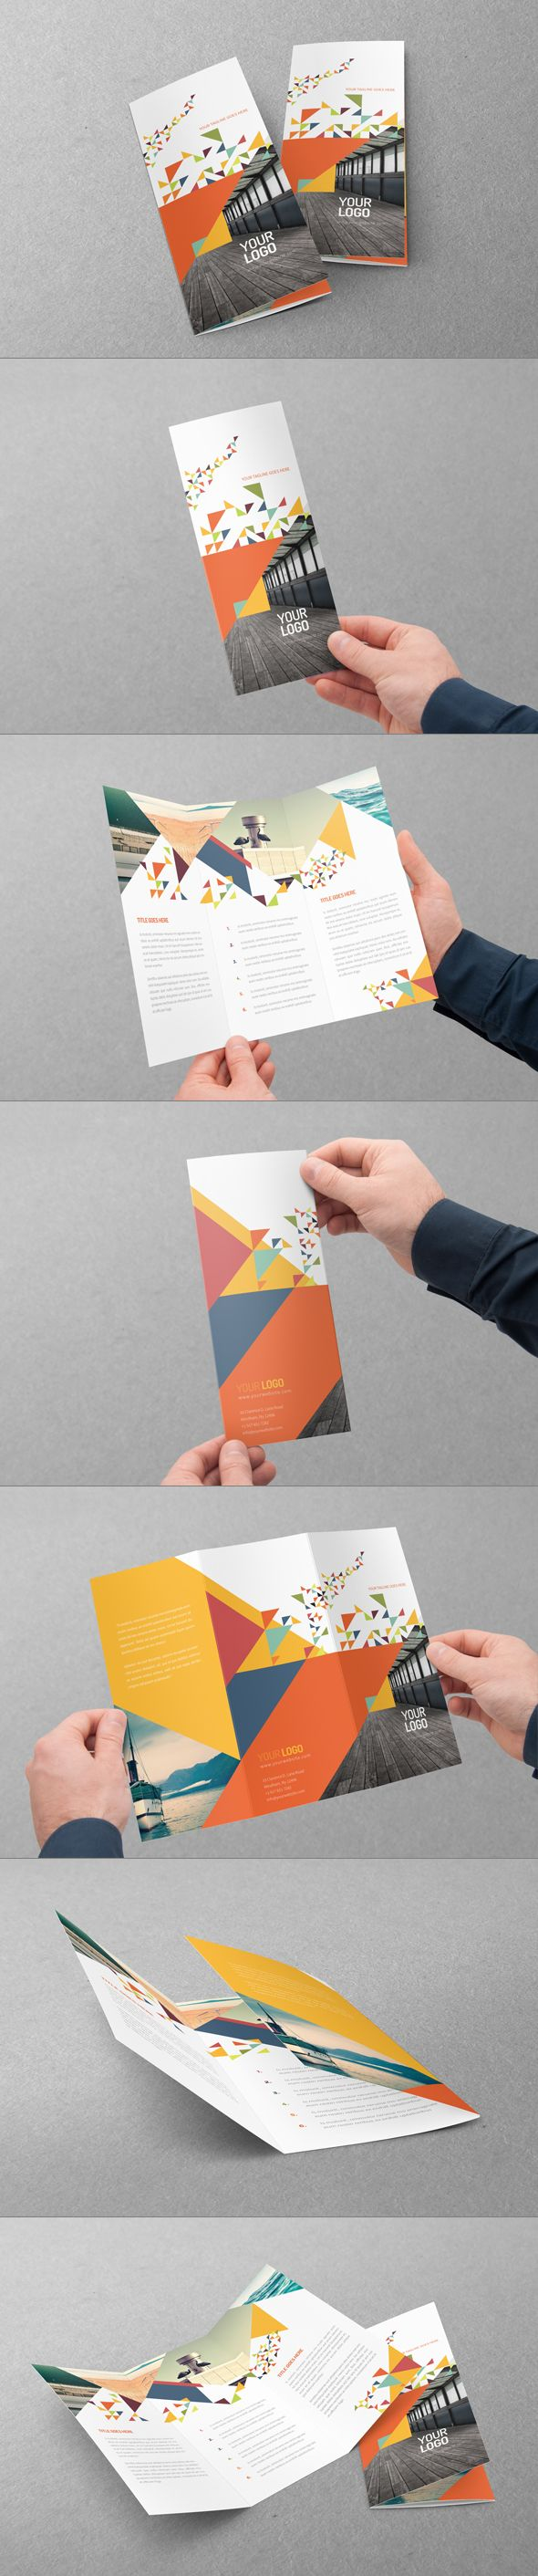 Colorful Modern Trifold. Download here: http://graphicriver.net/item/colorful-modern-trifold/7596238?ref=abradesign #design #brochure #trifold